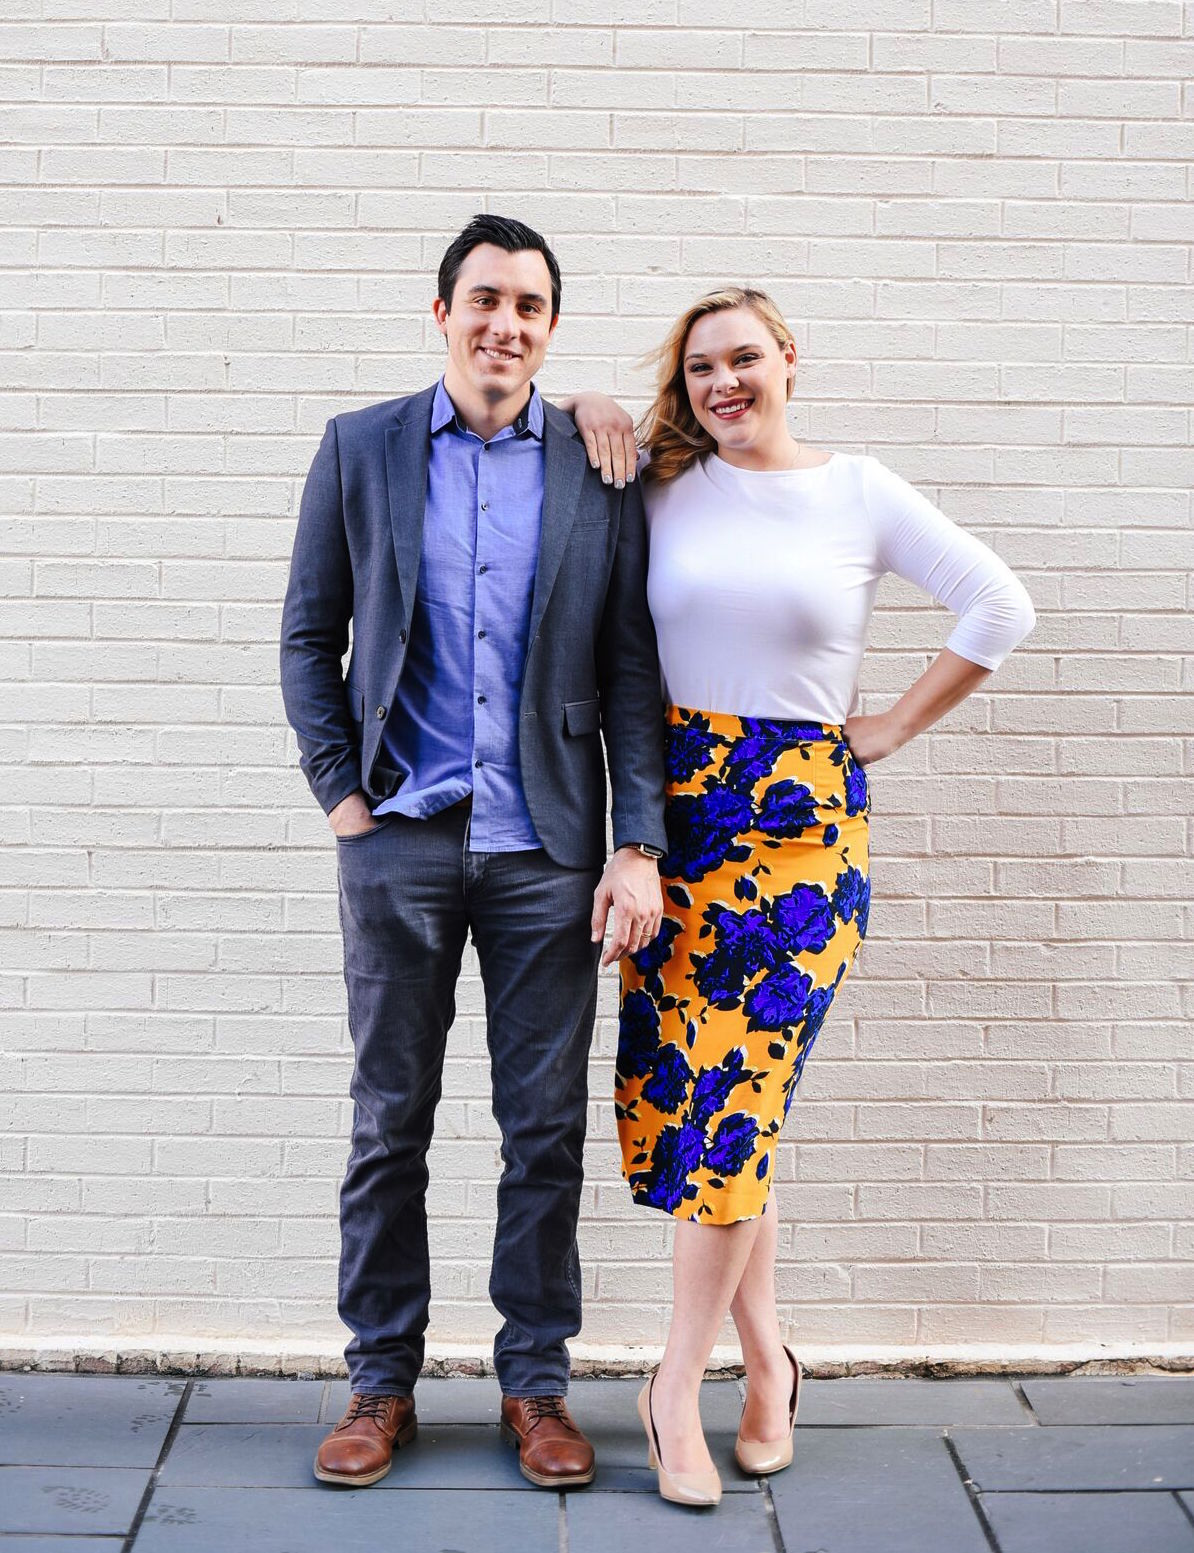 Photo: Jake and Belinda Hare, co-founders of Launchpeer; Source: Courtesy Photo